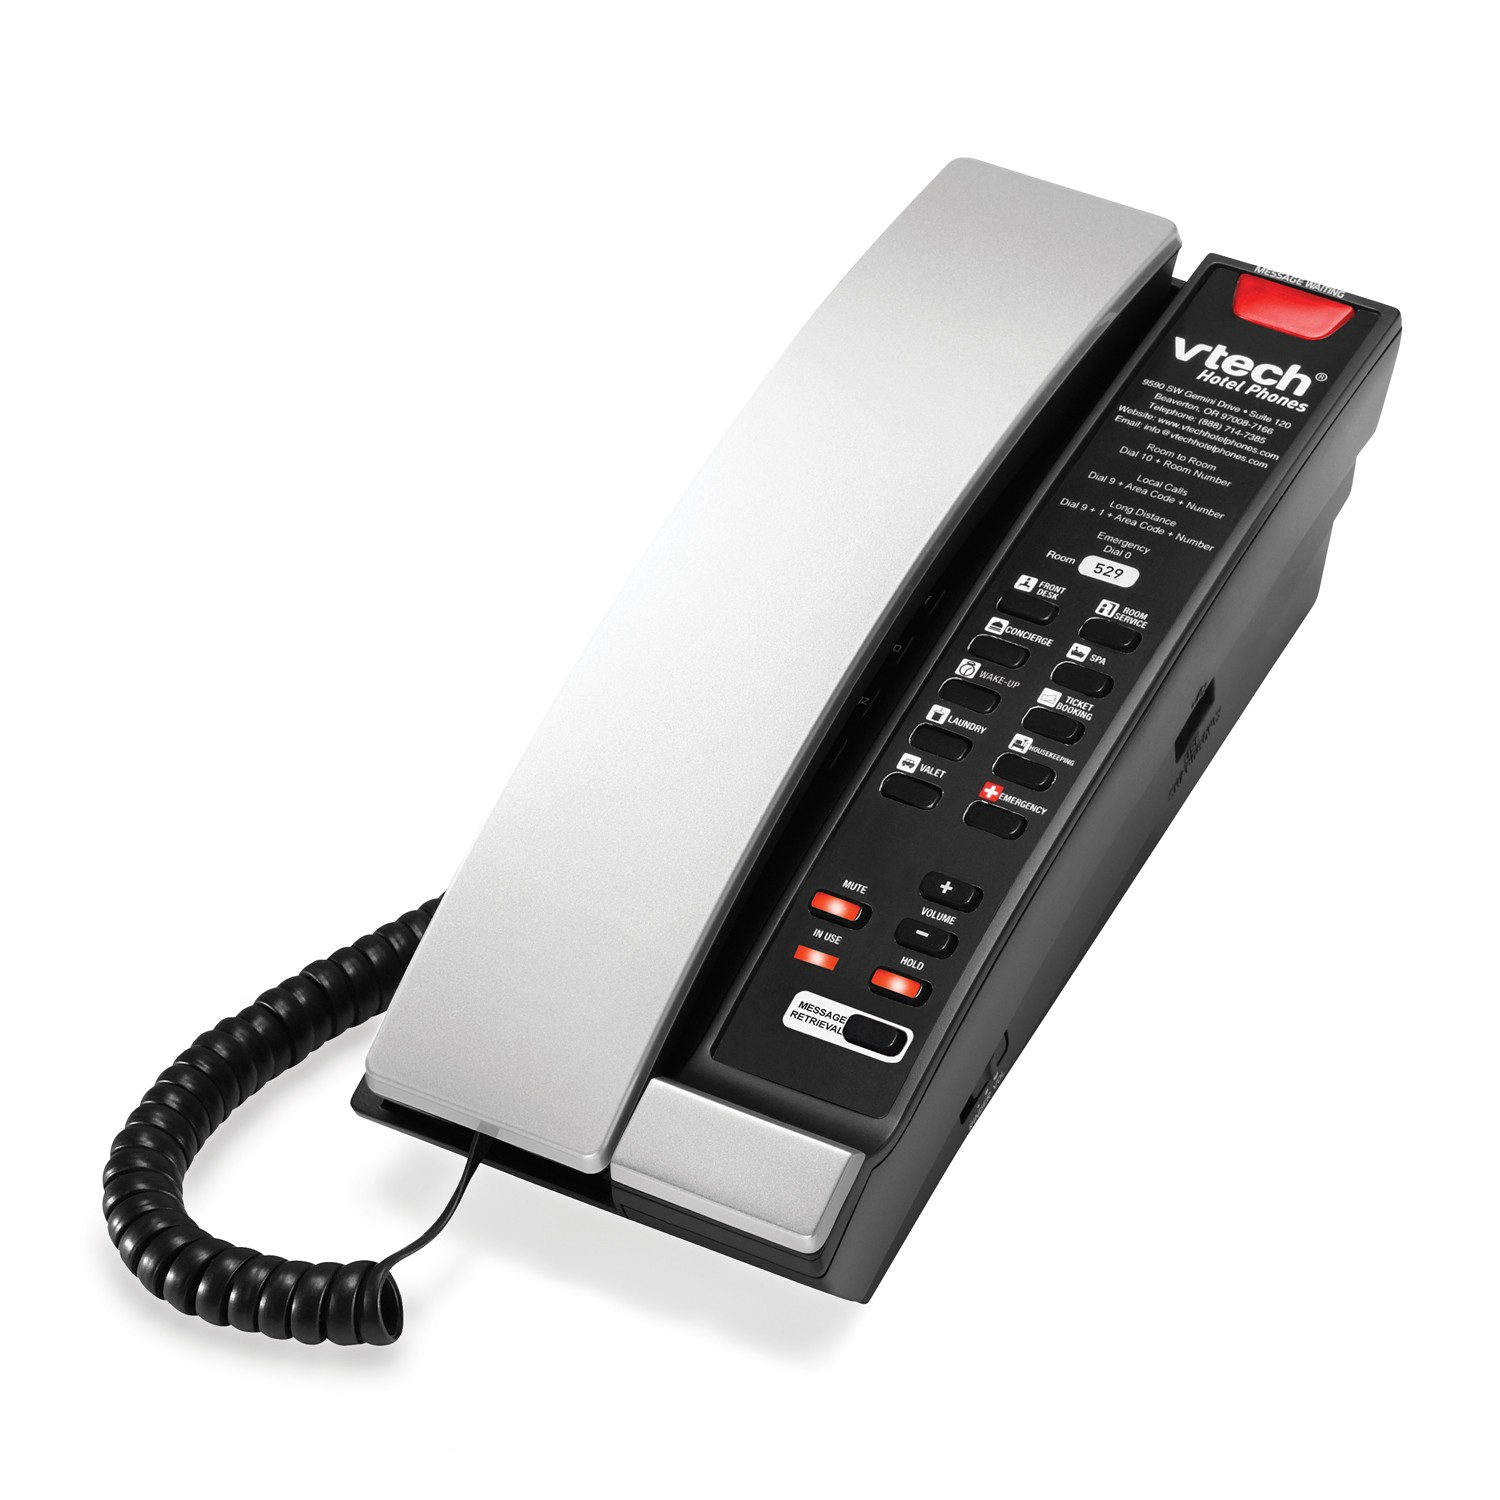 ultra-elegant gigabit ip phone how to take multiple calls